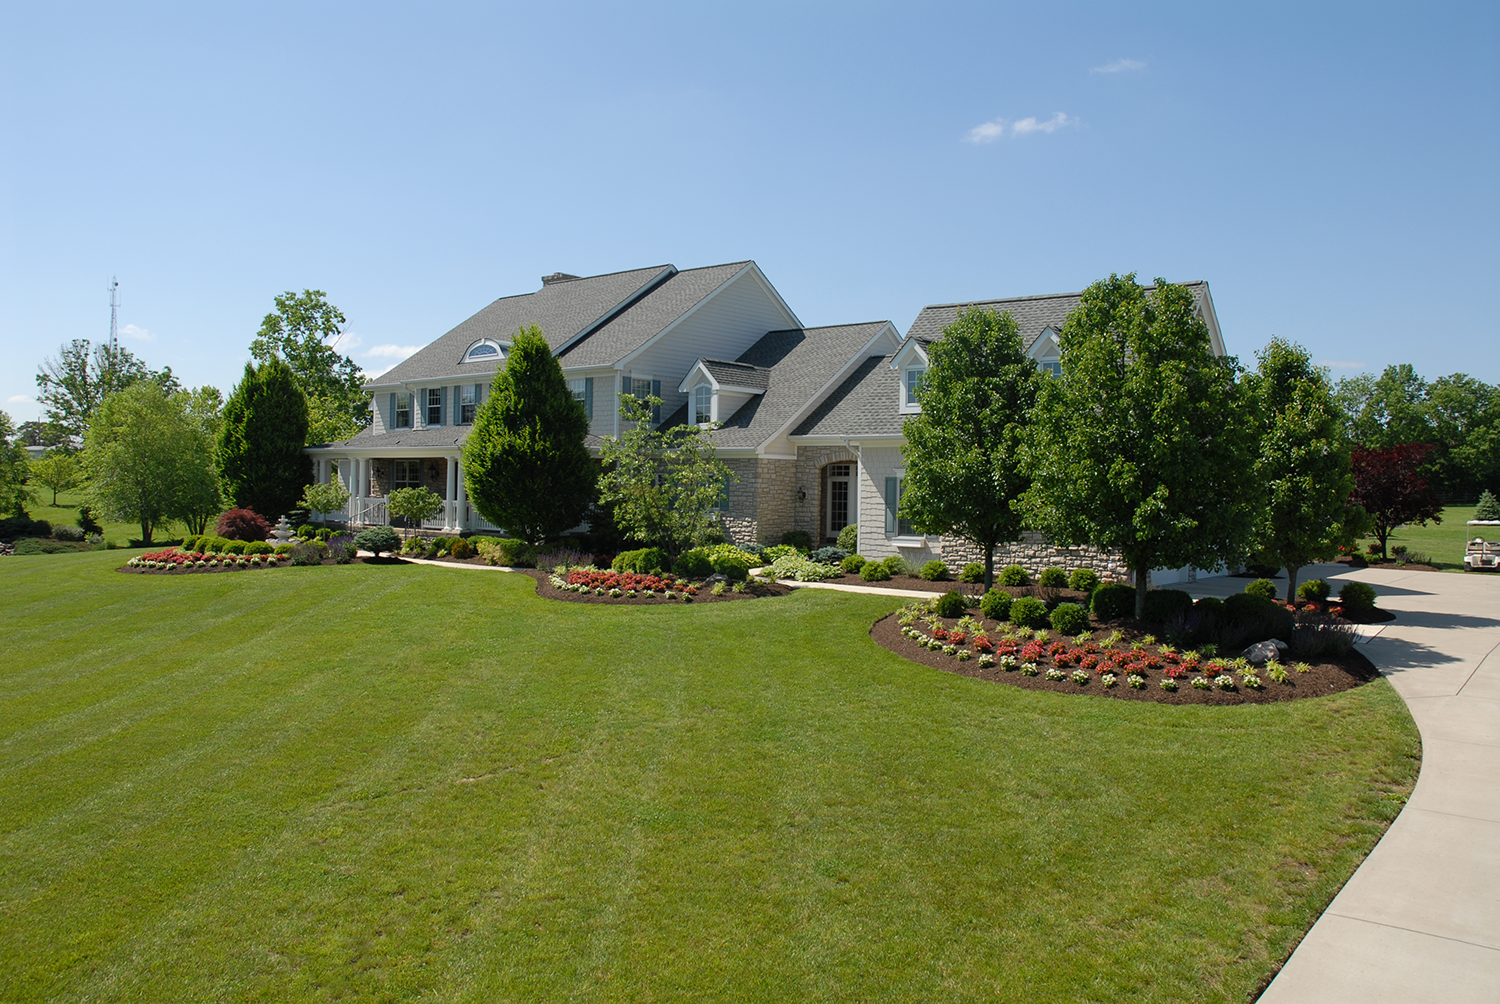 Commercial properties tinkerturf for Commercial lawn maintenance